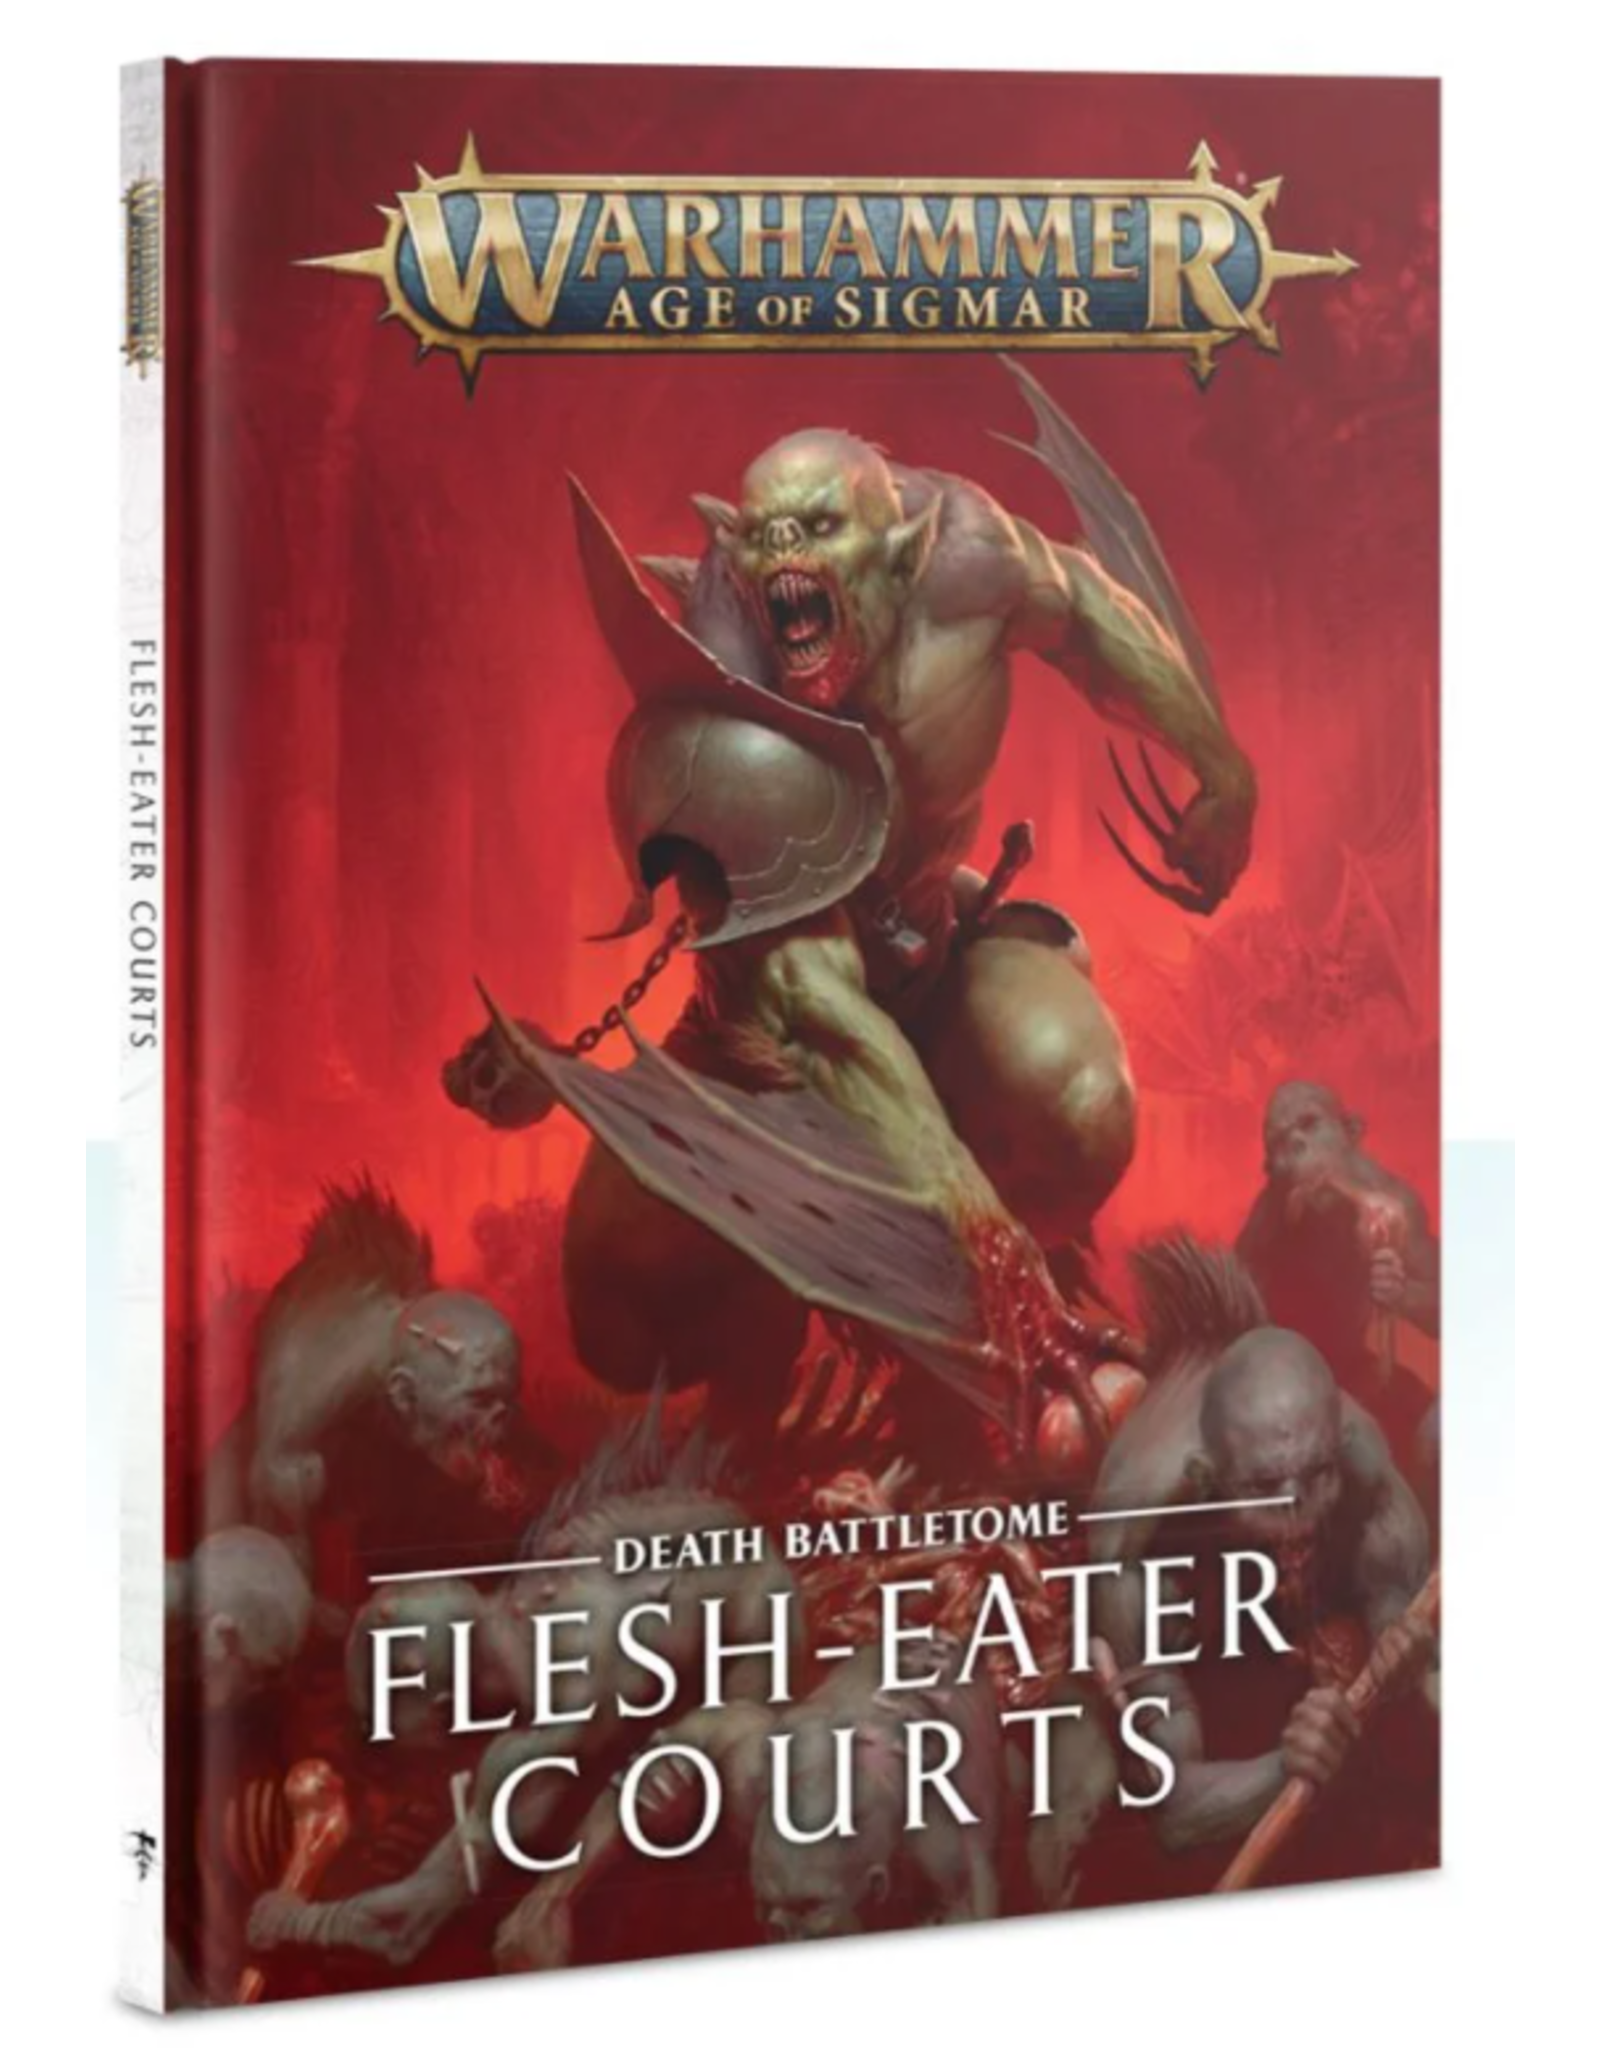 Games Workshop Warhammer Age of Sigmar Battletome: Flesh-Eater Courts